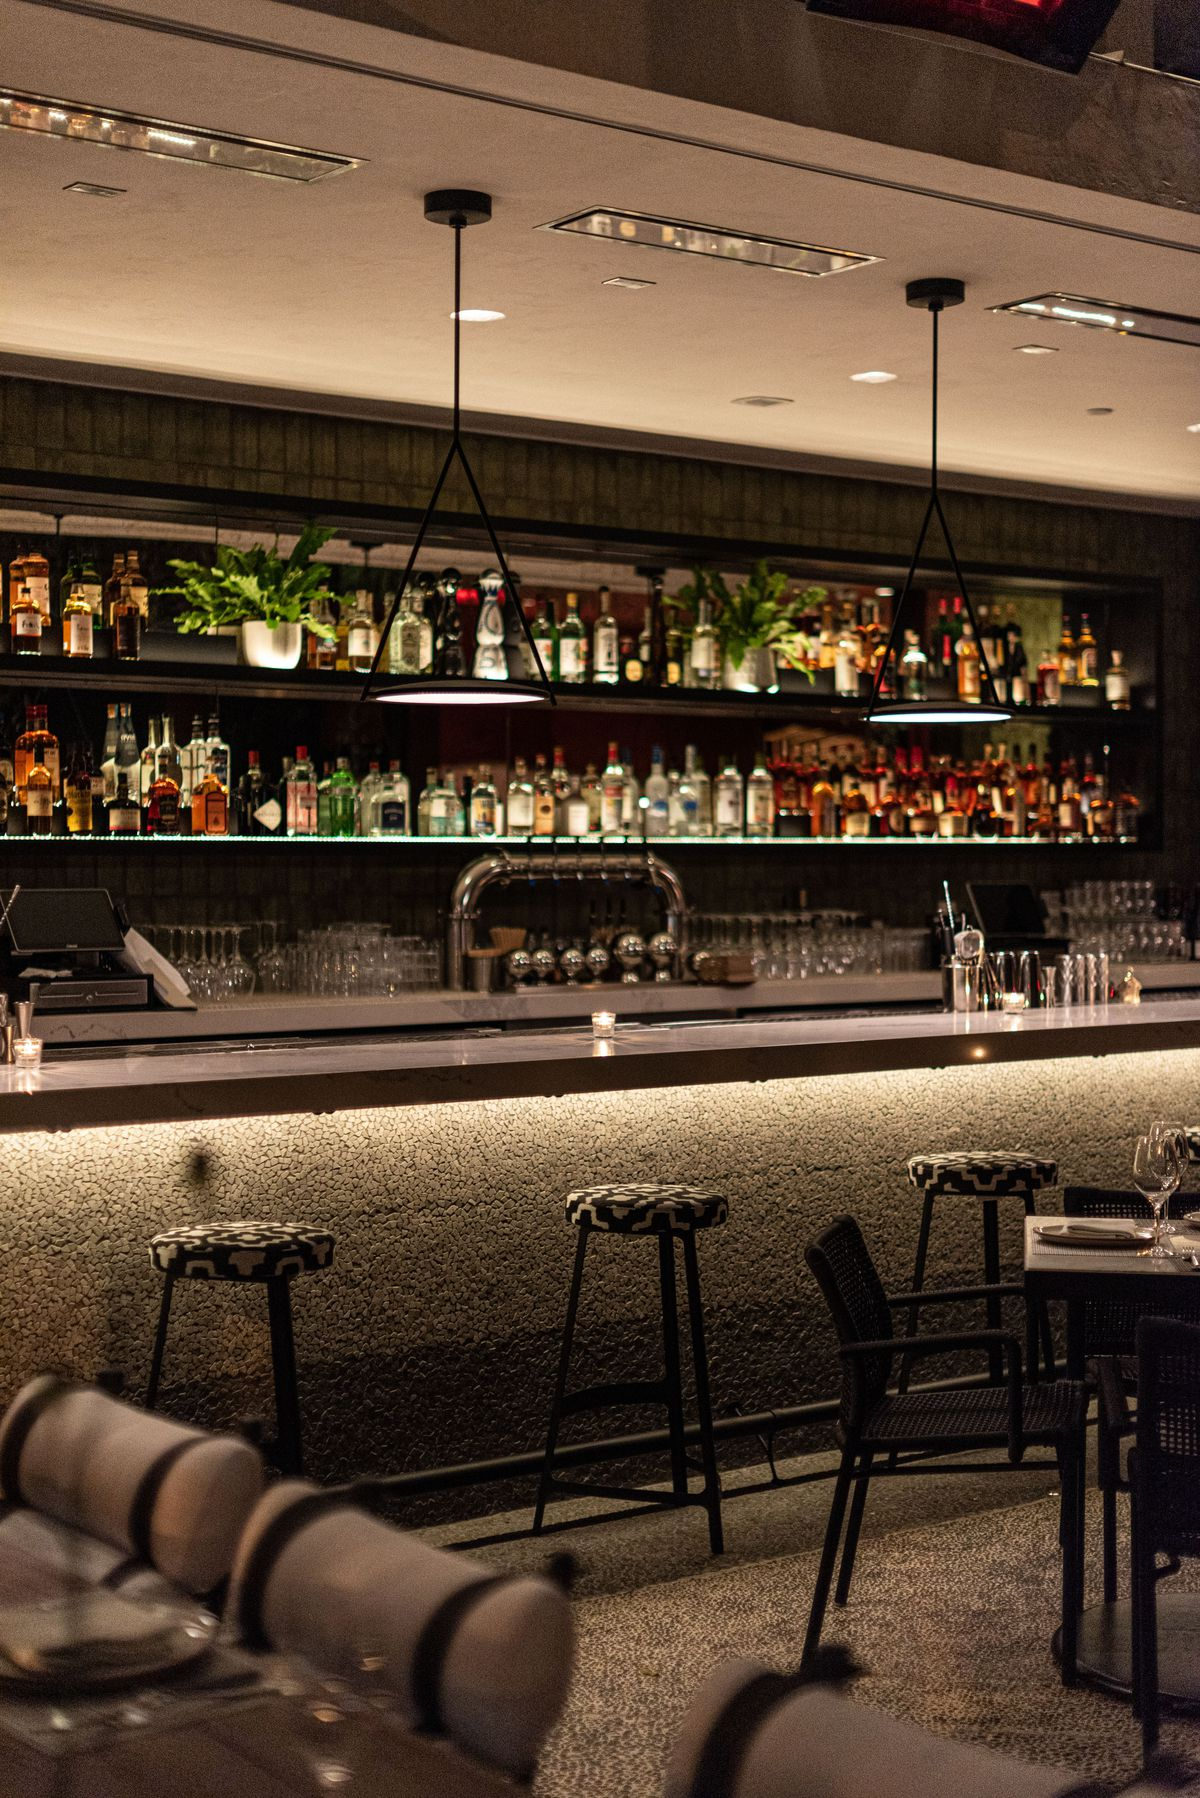 A dark bar with lots of bottles behind a backlit bartop, with stone underfoot.